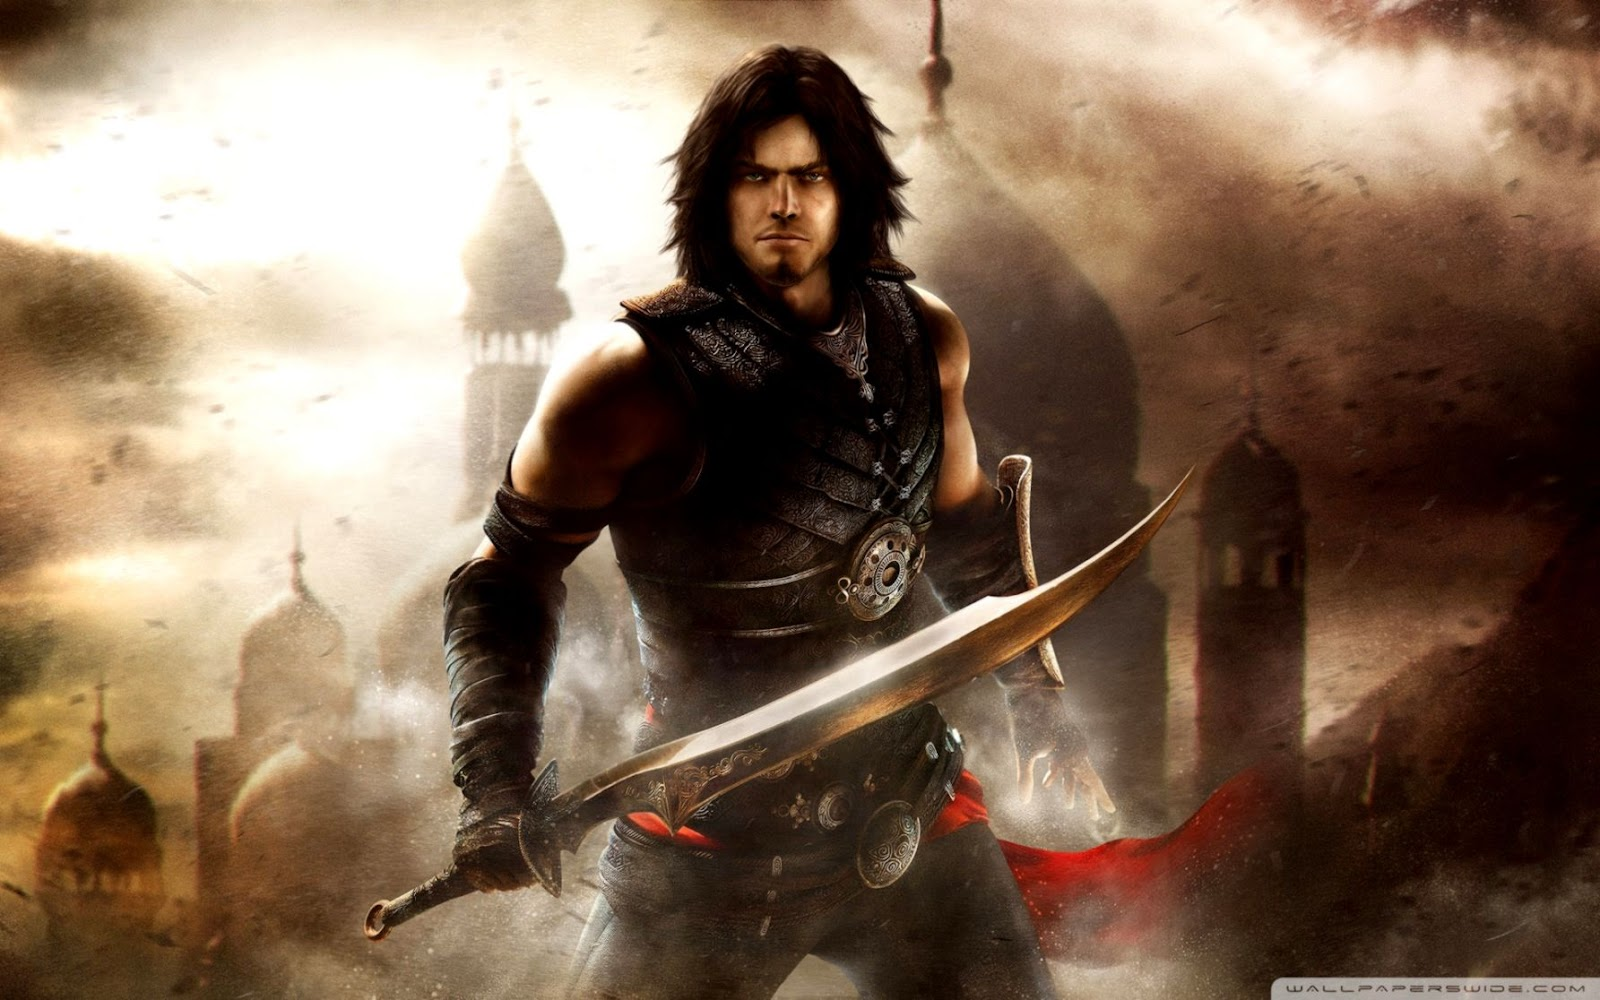 Prince Of Persia The Forgotten Sands Wallpaper Styles Wallpapers